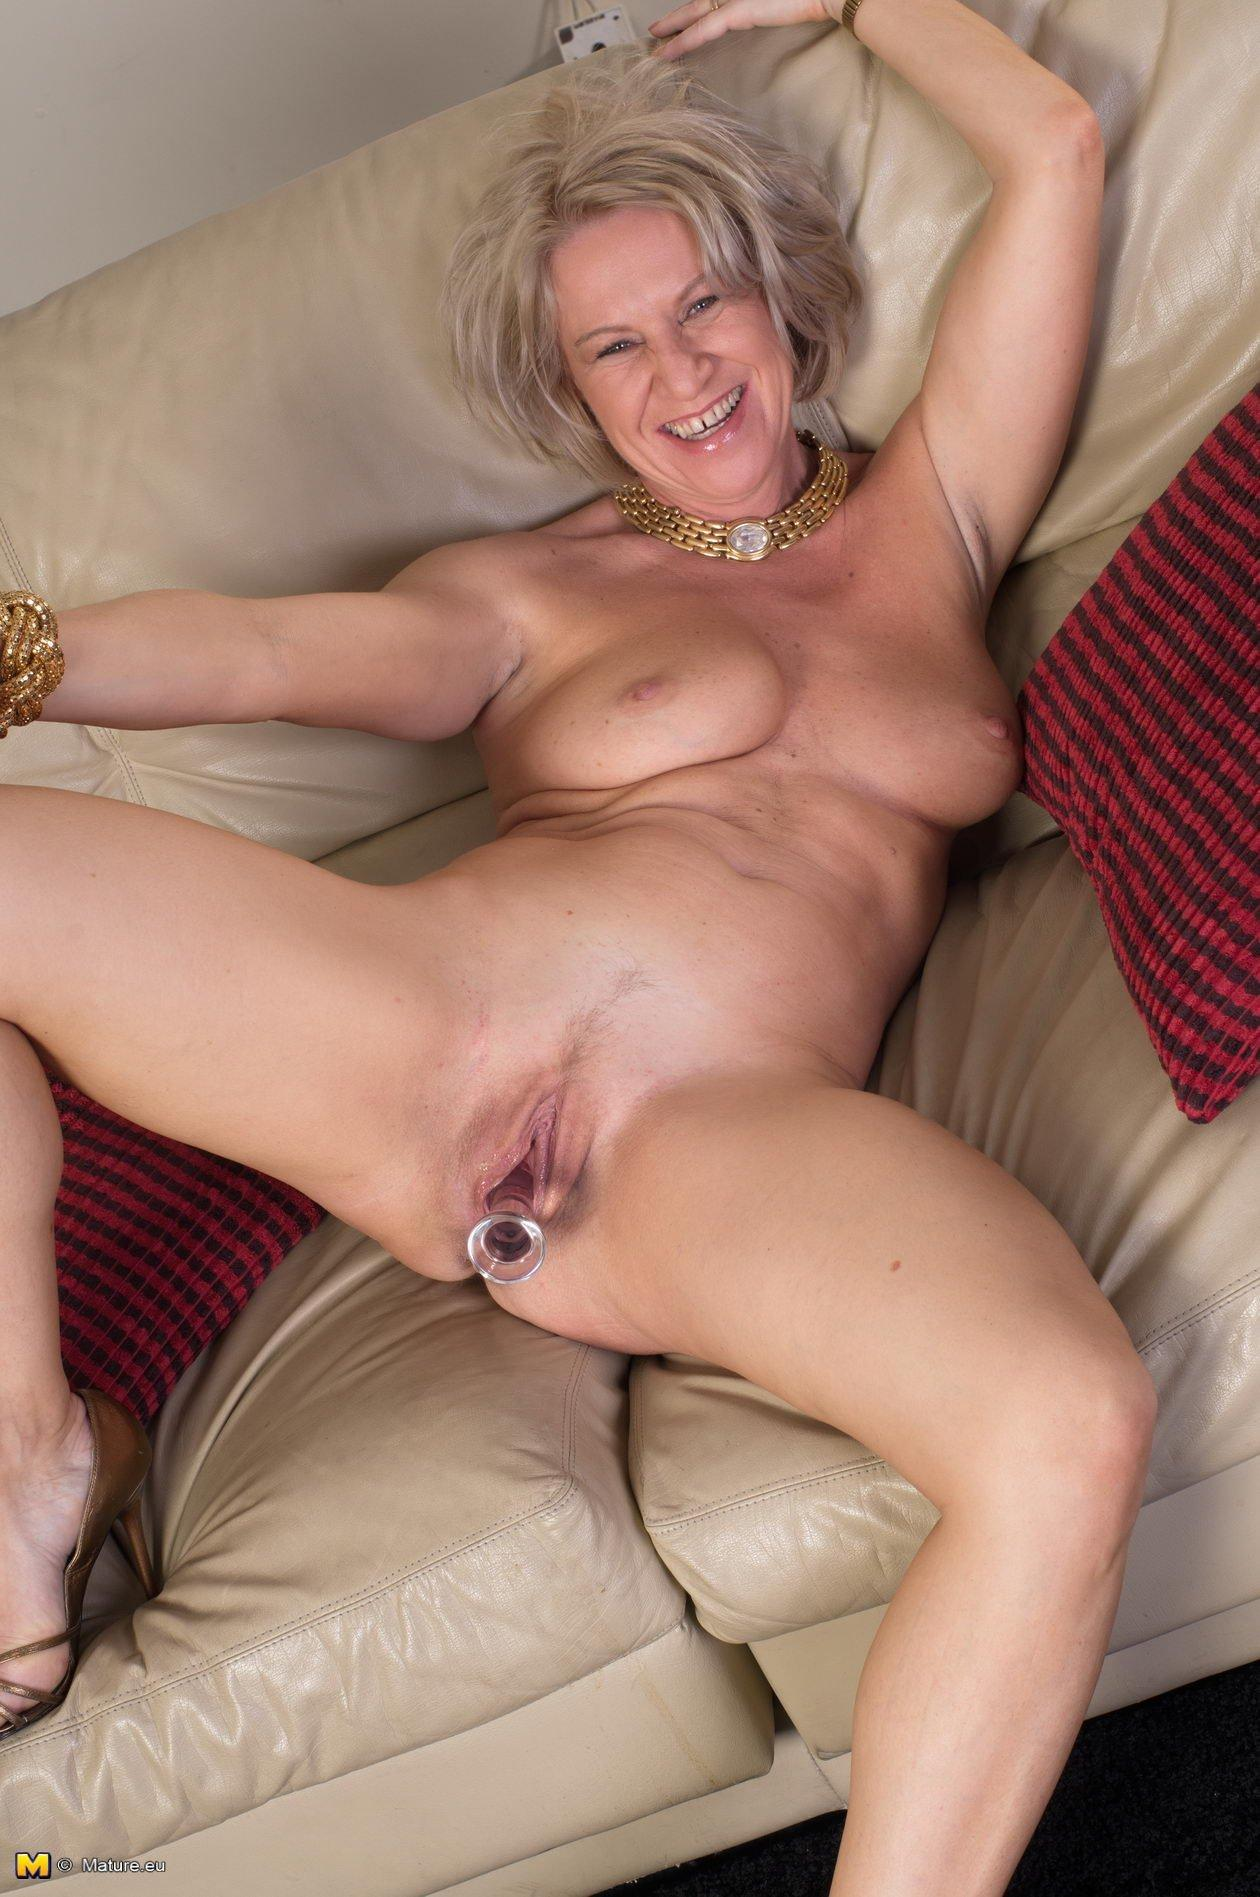 Gallery mature nude pic pussy tgp thumbnail